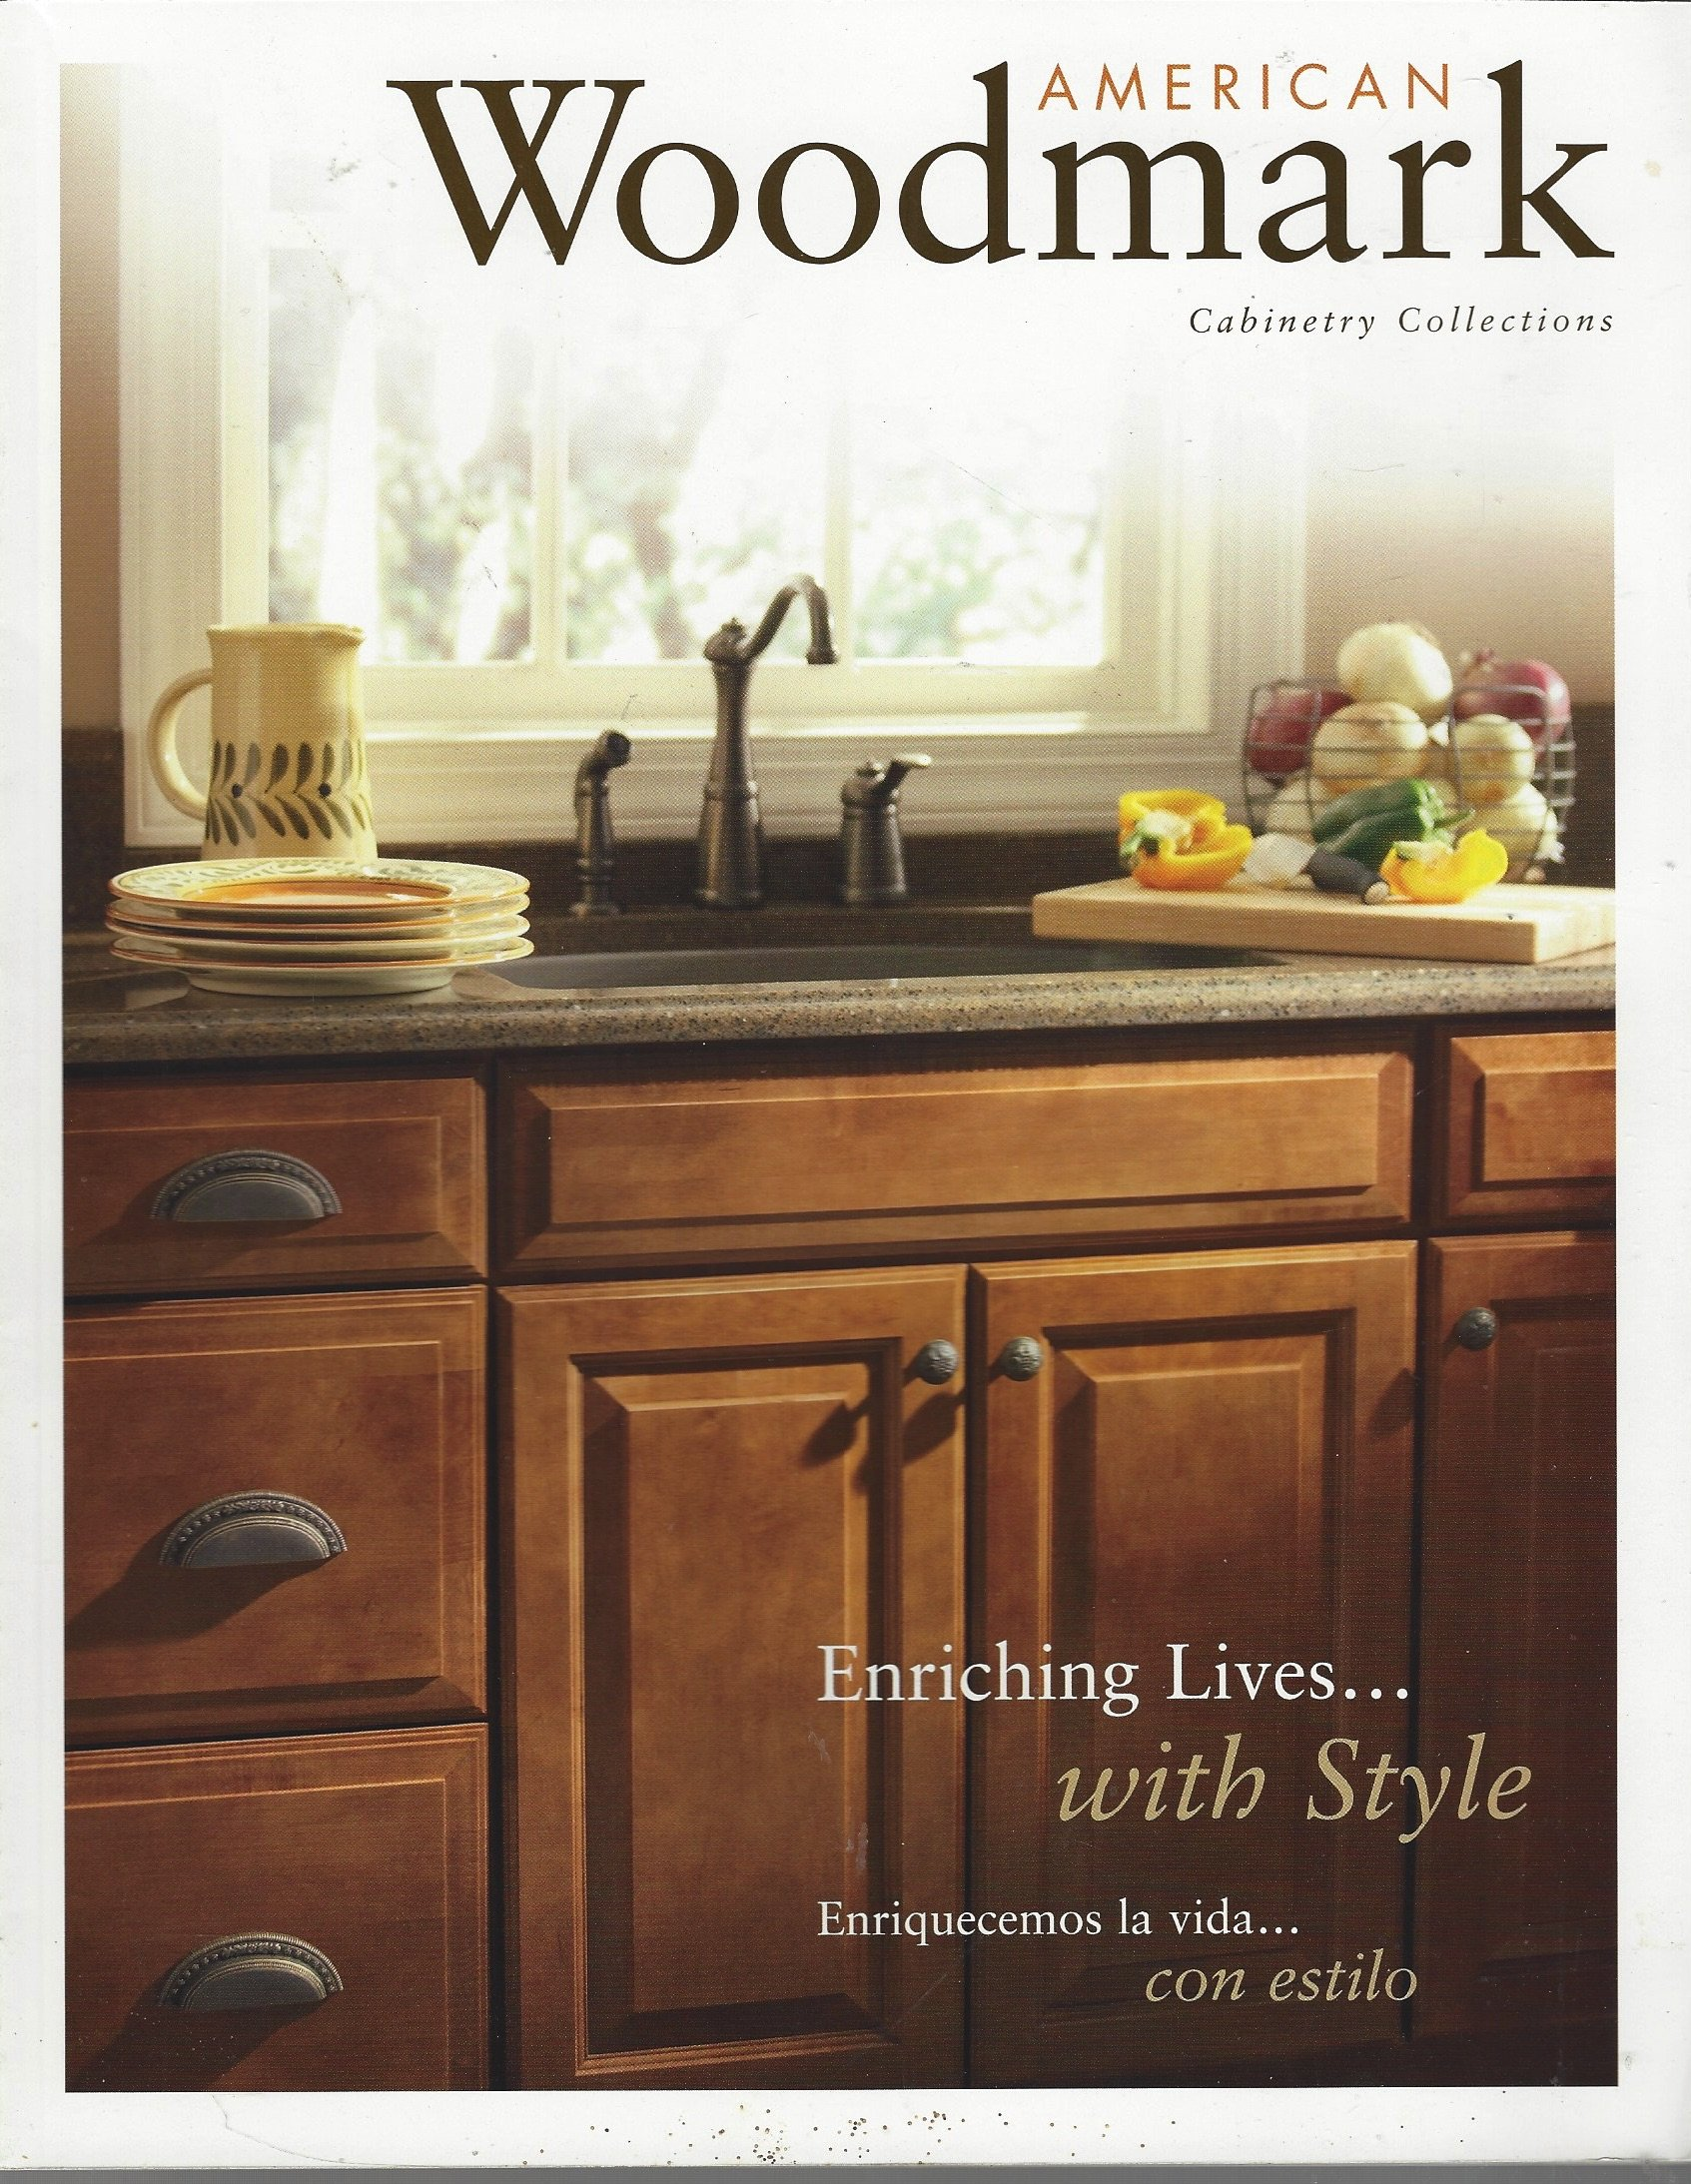 Miraculous American Woodmark Cabinetry Collections Catalog Staff Beutiful Home Inspiration Cosmmahrainfo